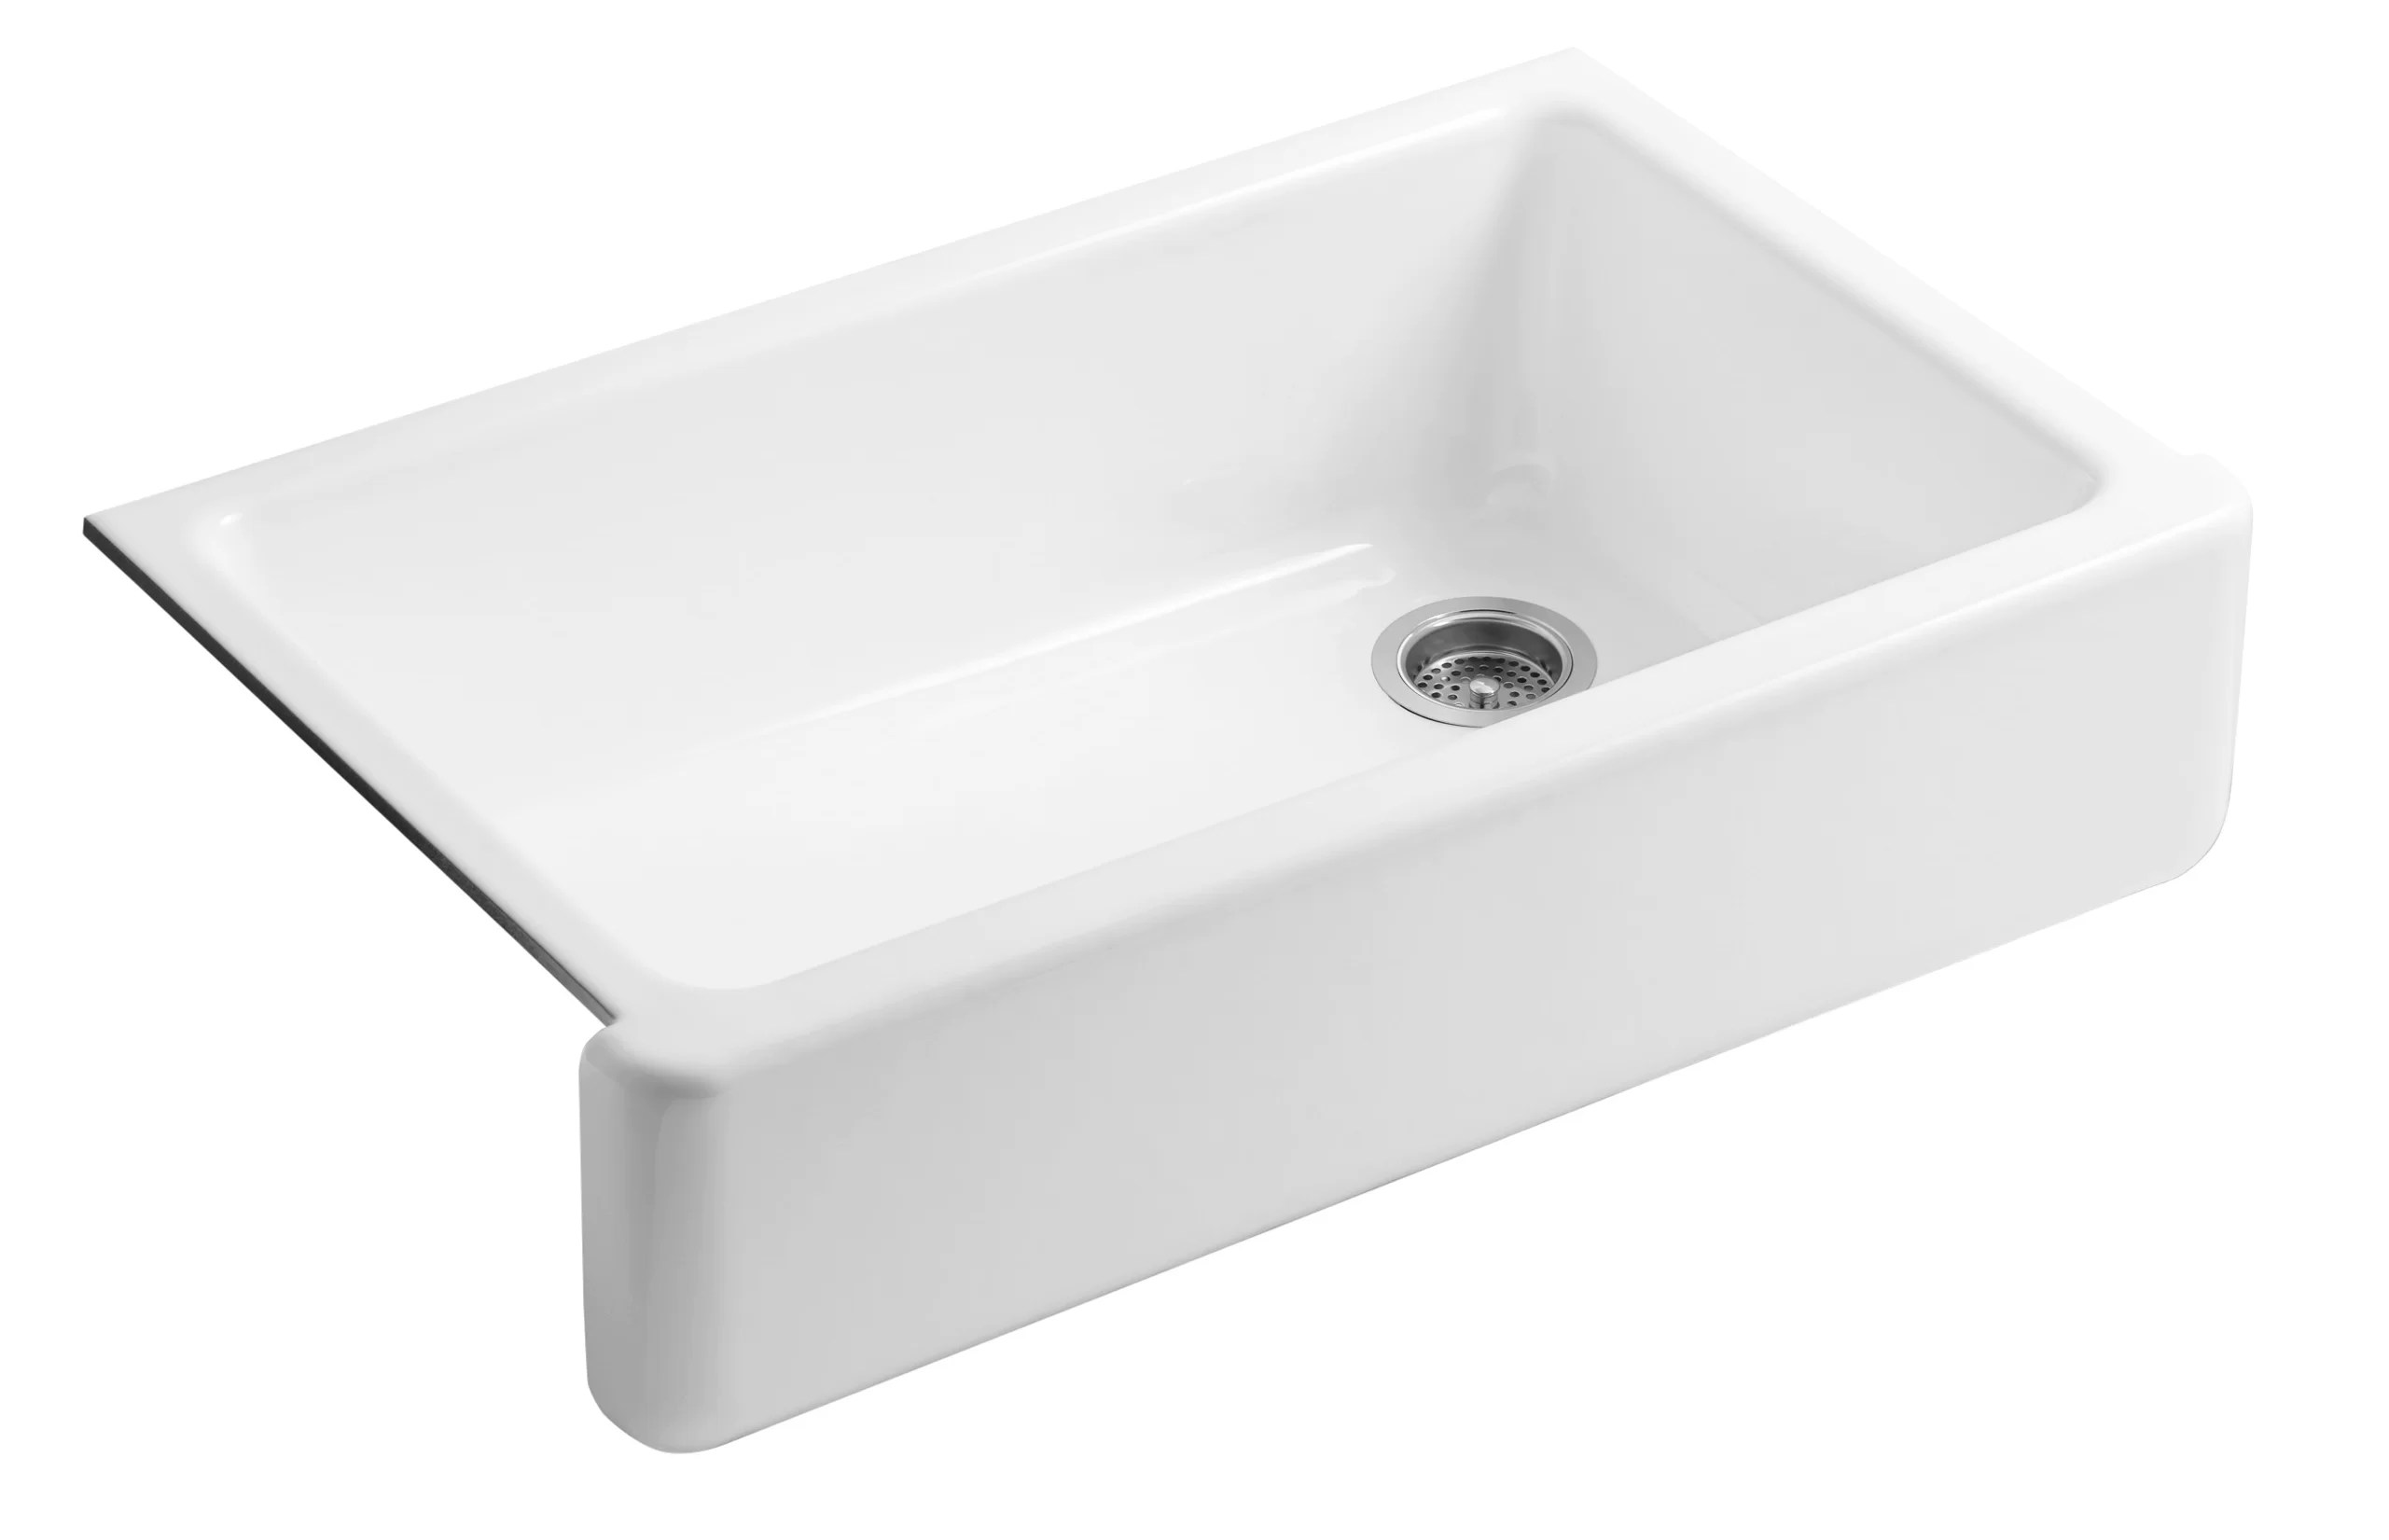 Kohler Whitehaven Farmhouse Sink Accessories Kohler Whitehaven Self Trimming 35 69 Quot X 21 56 Quot Farmhouse